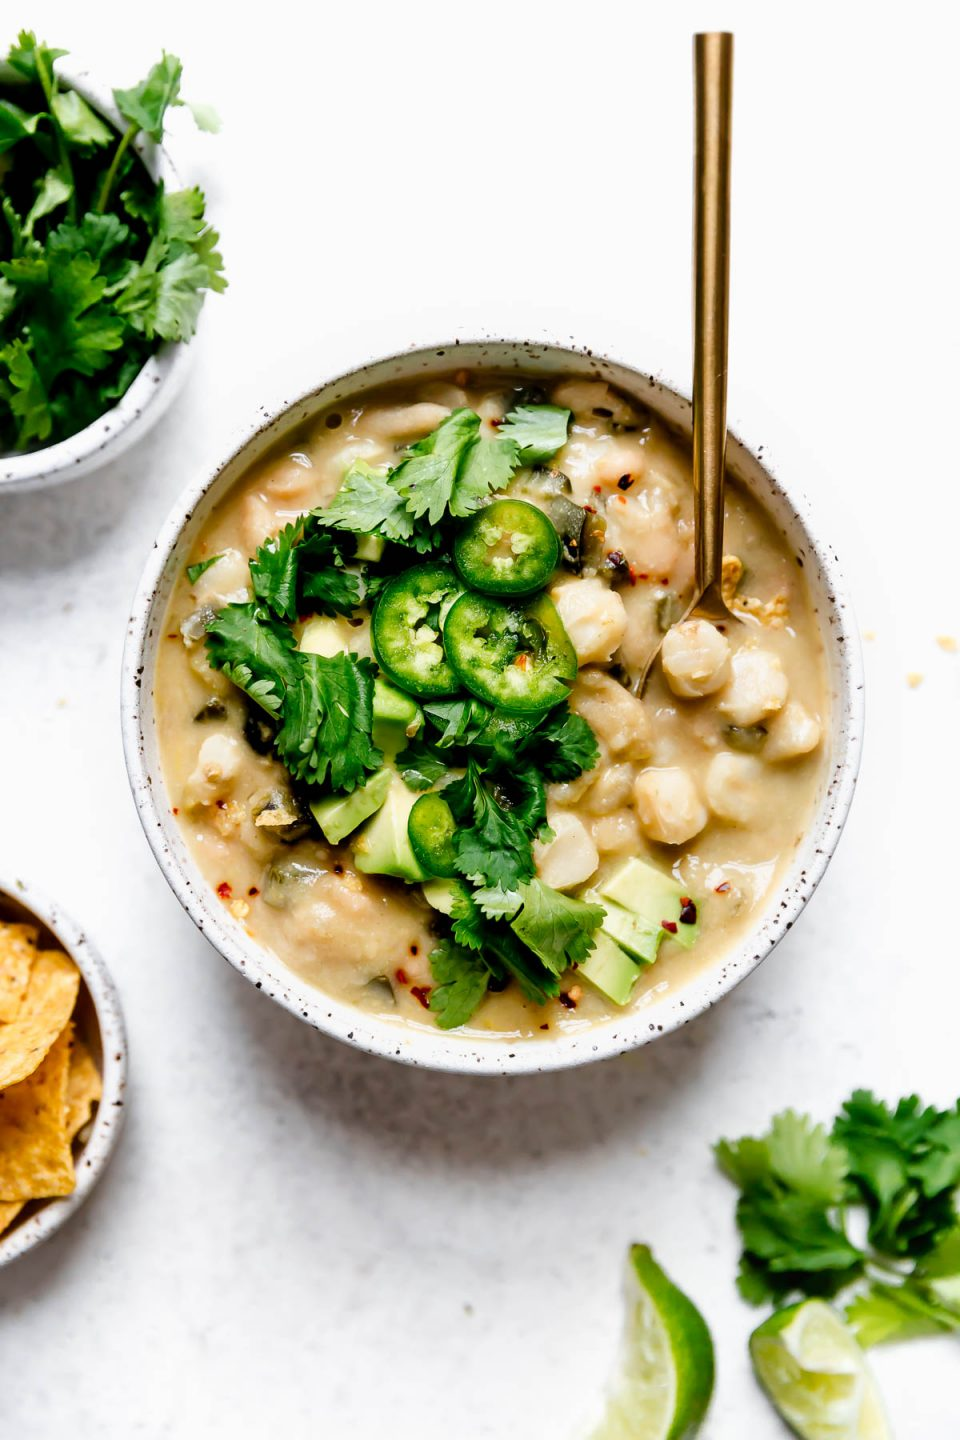 Vegan white chili served in a speckled ceramic bowl, topped with sliced jalapeno, cilantro, & diced avocado. The chili bowl is surrounded by other small bowls with vegan chili toppings, including crushed tortilla strips & lime wedges.